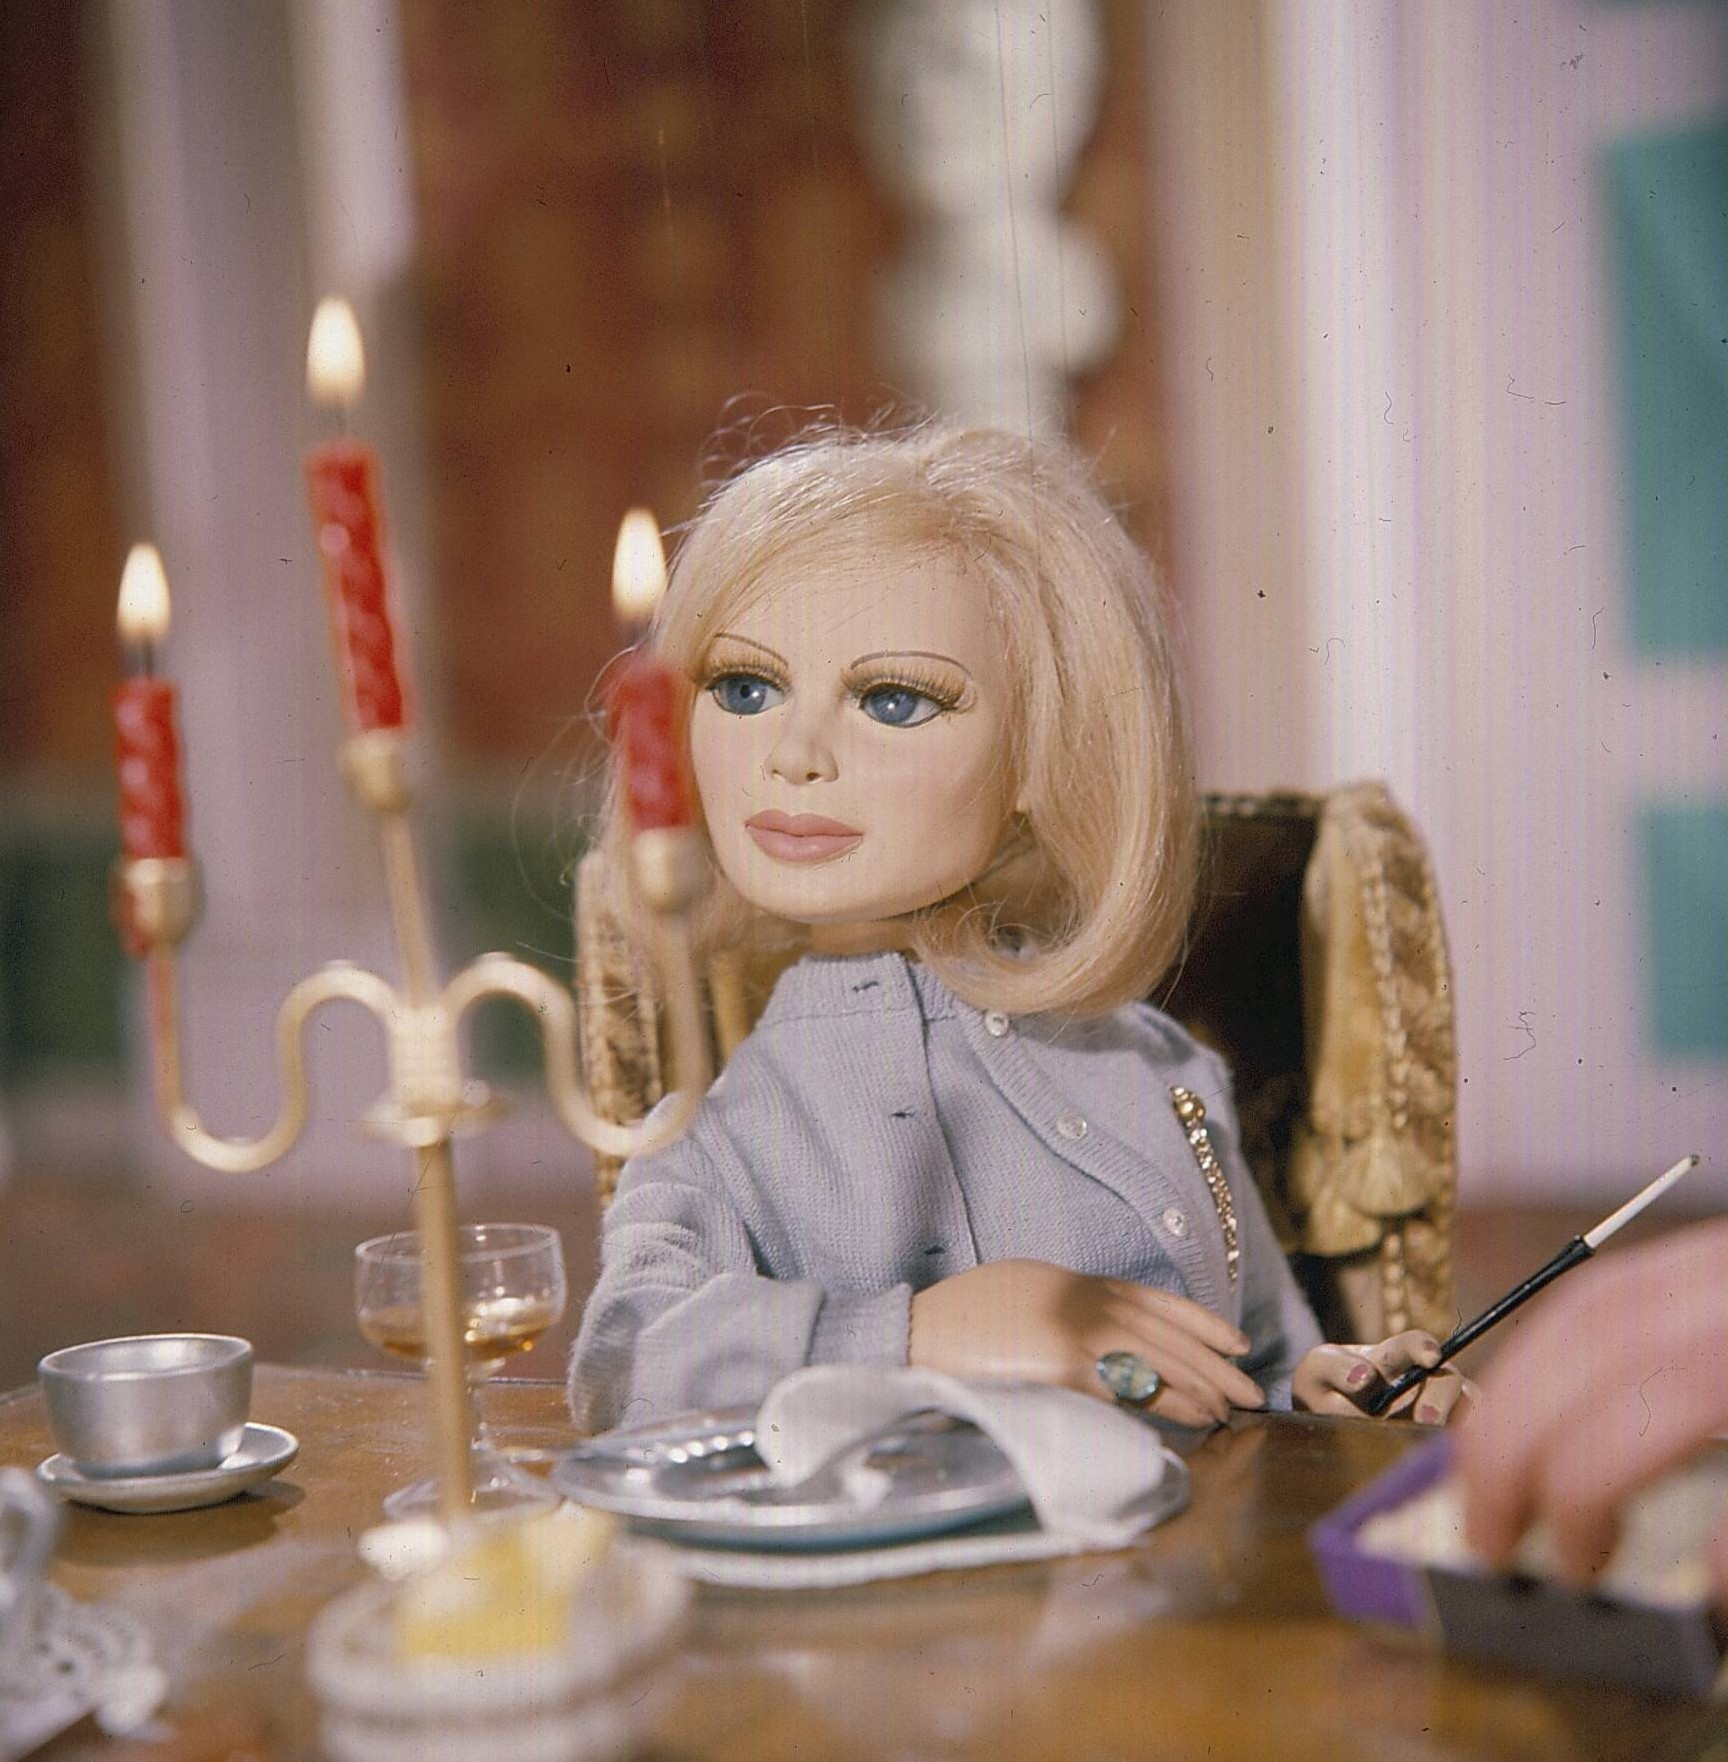 'Lady Penelope' pictured in a scene from the television series 'Thunderbirds' first broadcast in 1965.